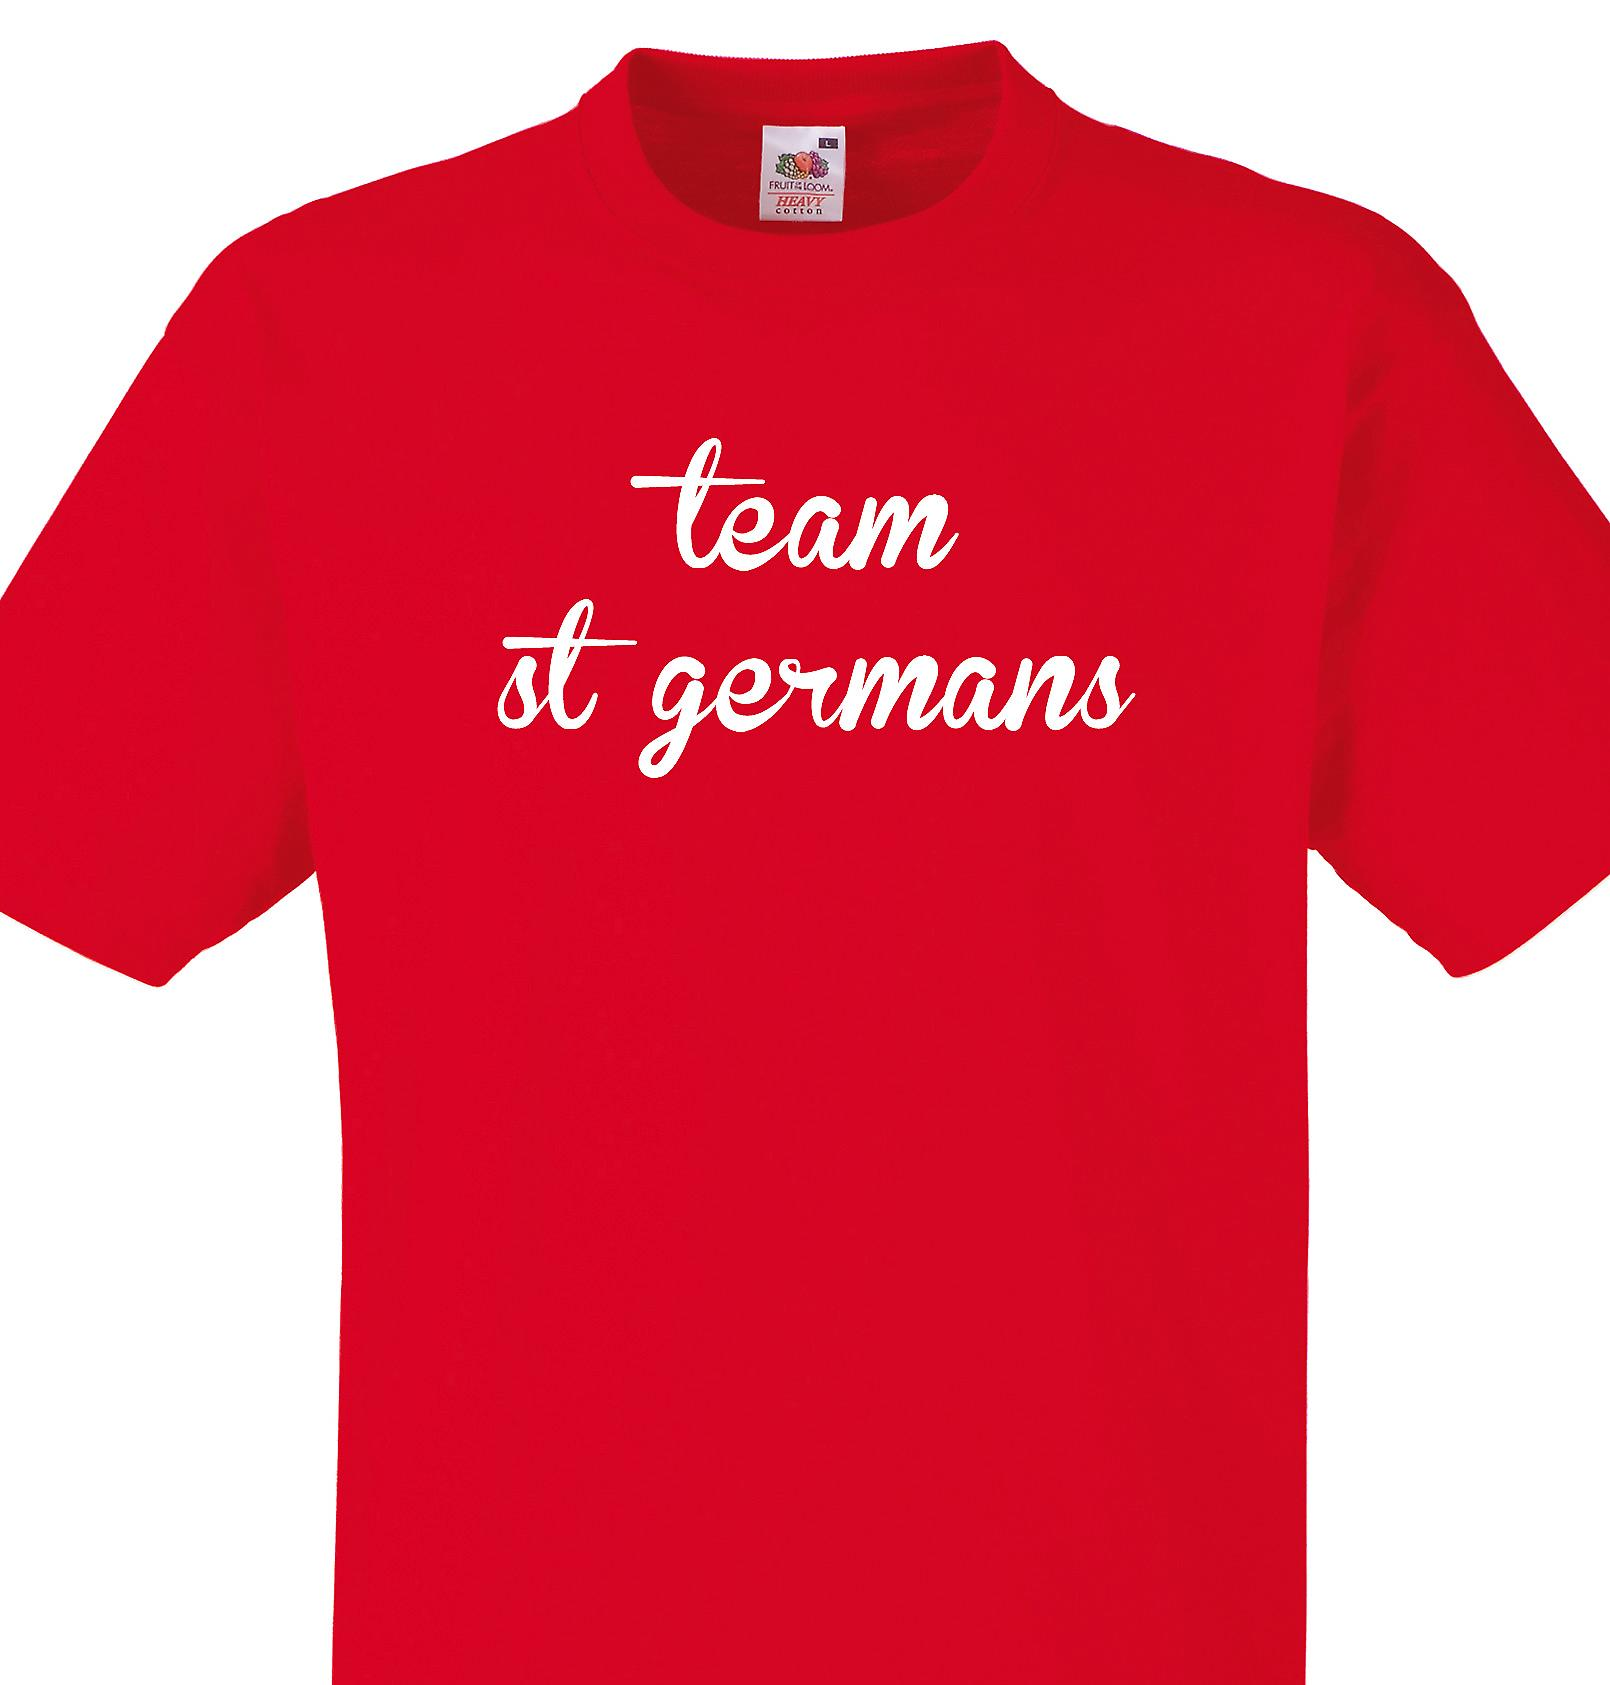 Team St germans Red T shirt